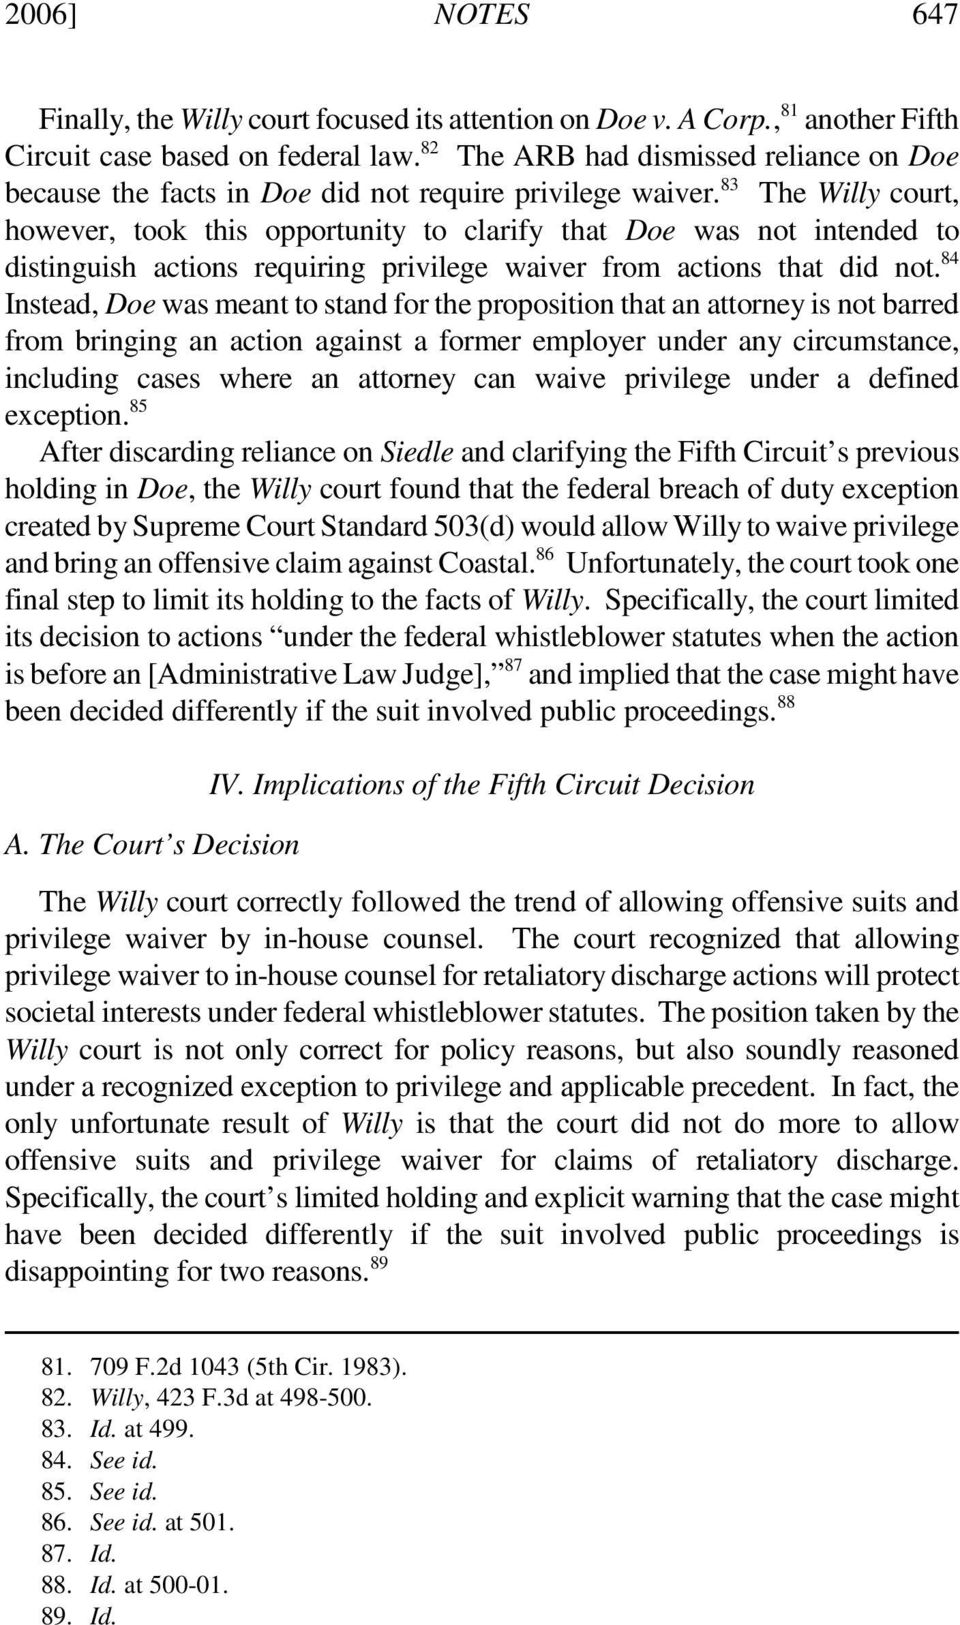 83 The Willy court, however, took this opportunity to clarify that Doe was not intended to distinguish actions requiring privilege waiver from actions that did not.